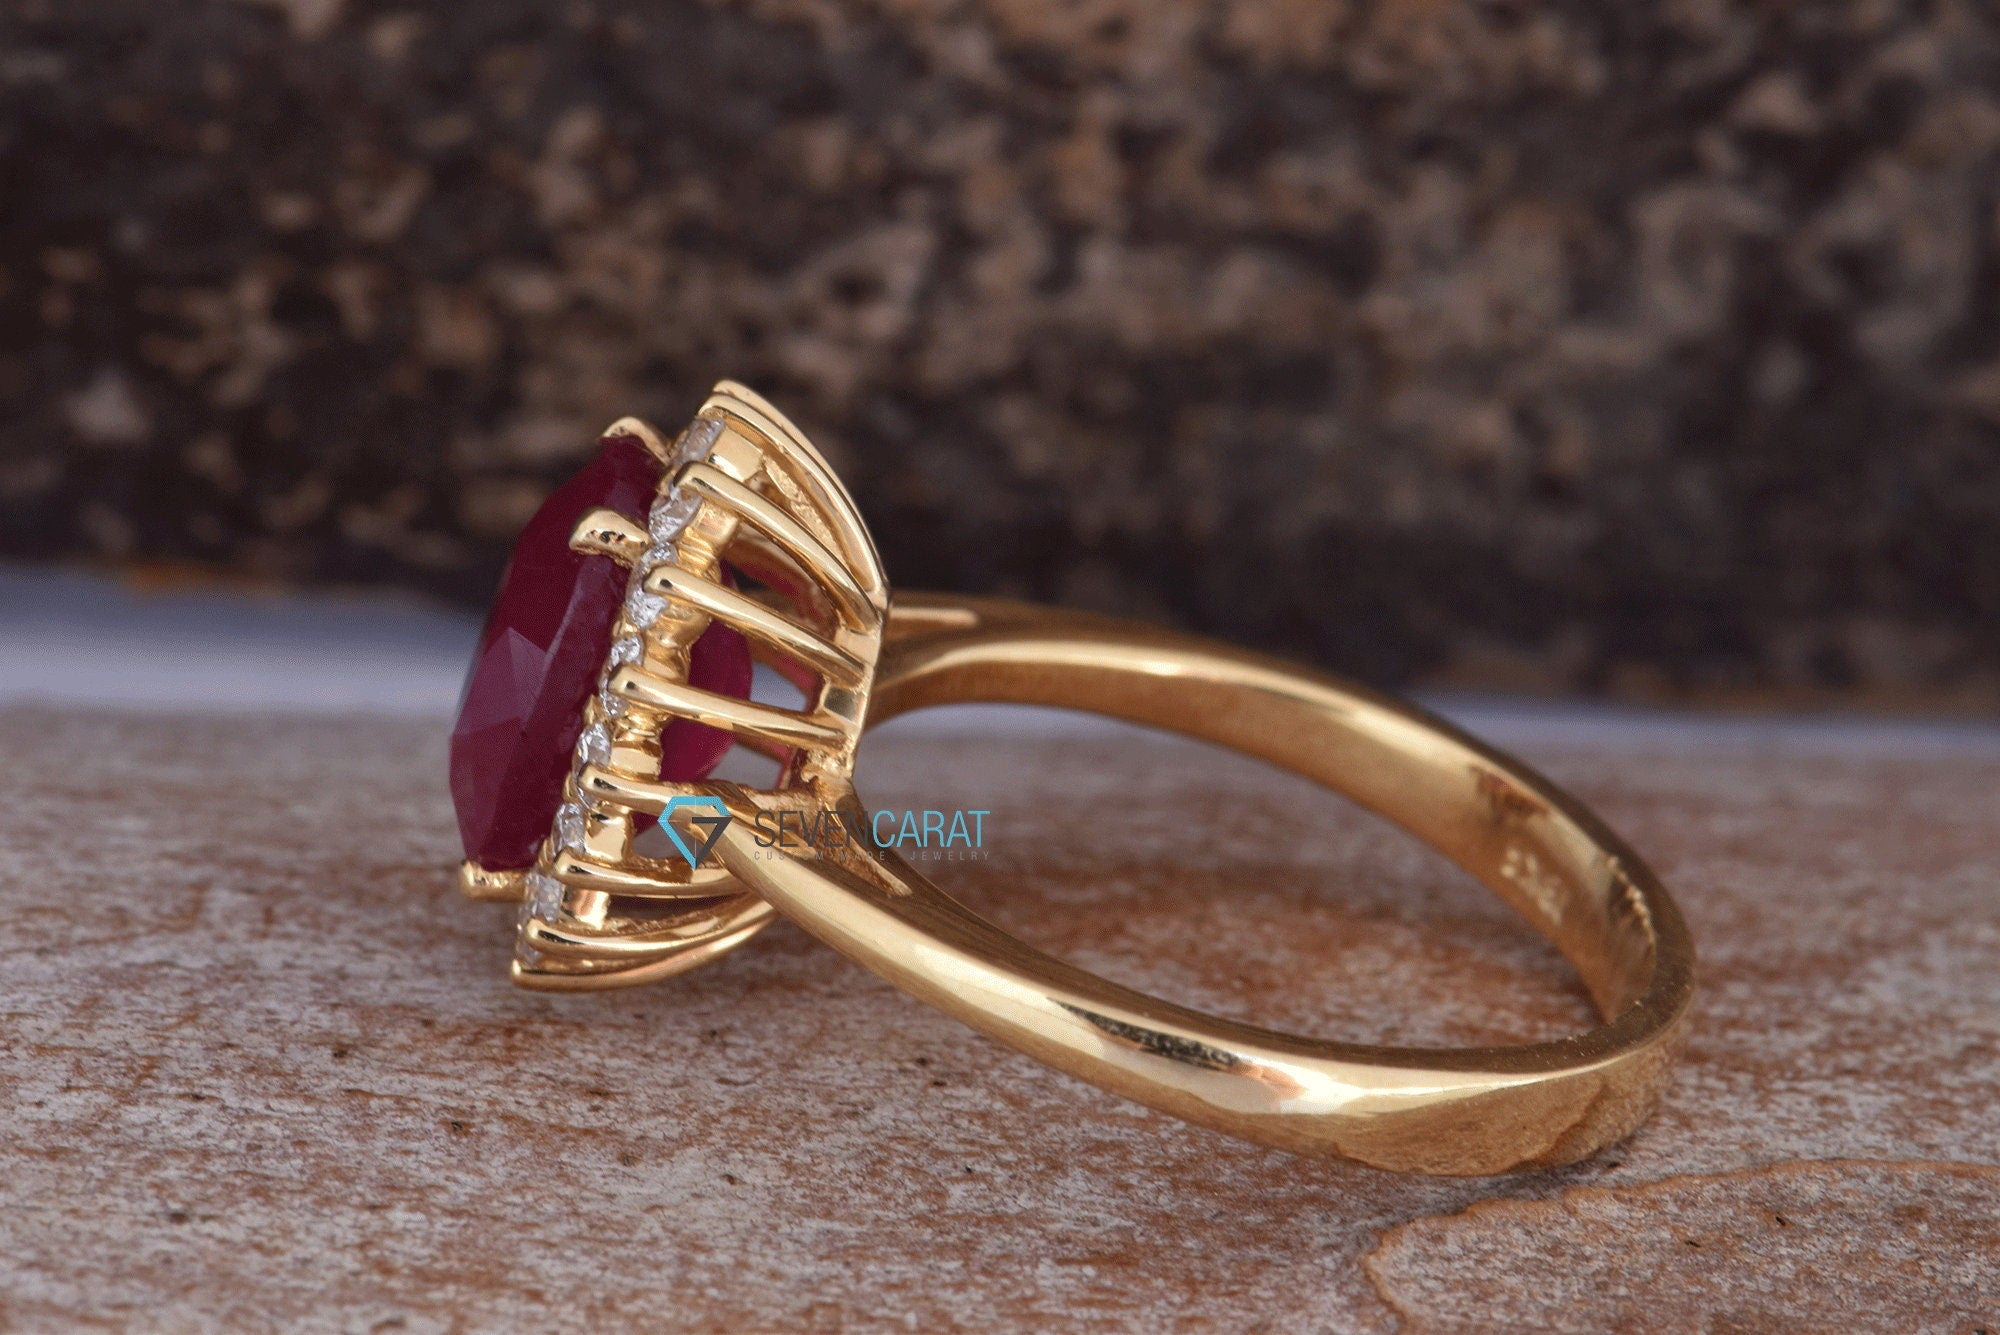 3 carat oval Ruby diamond ring with Ruby-ON SALE!!! -Engagement Ring-Ruby engagement ring-Multistone ring - SevenCarat